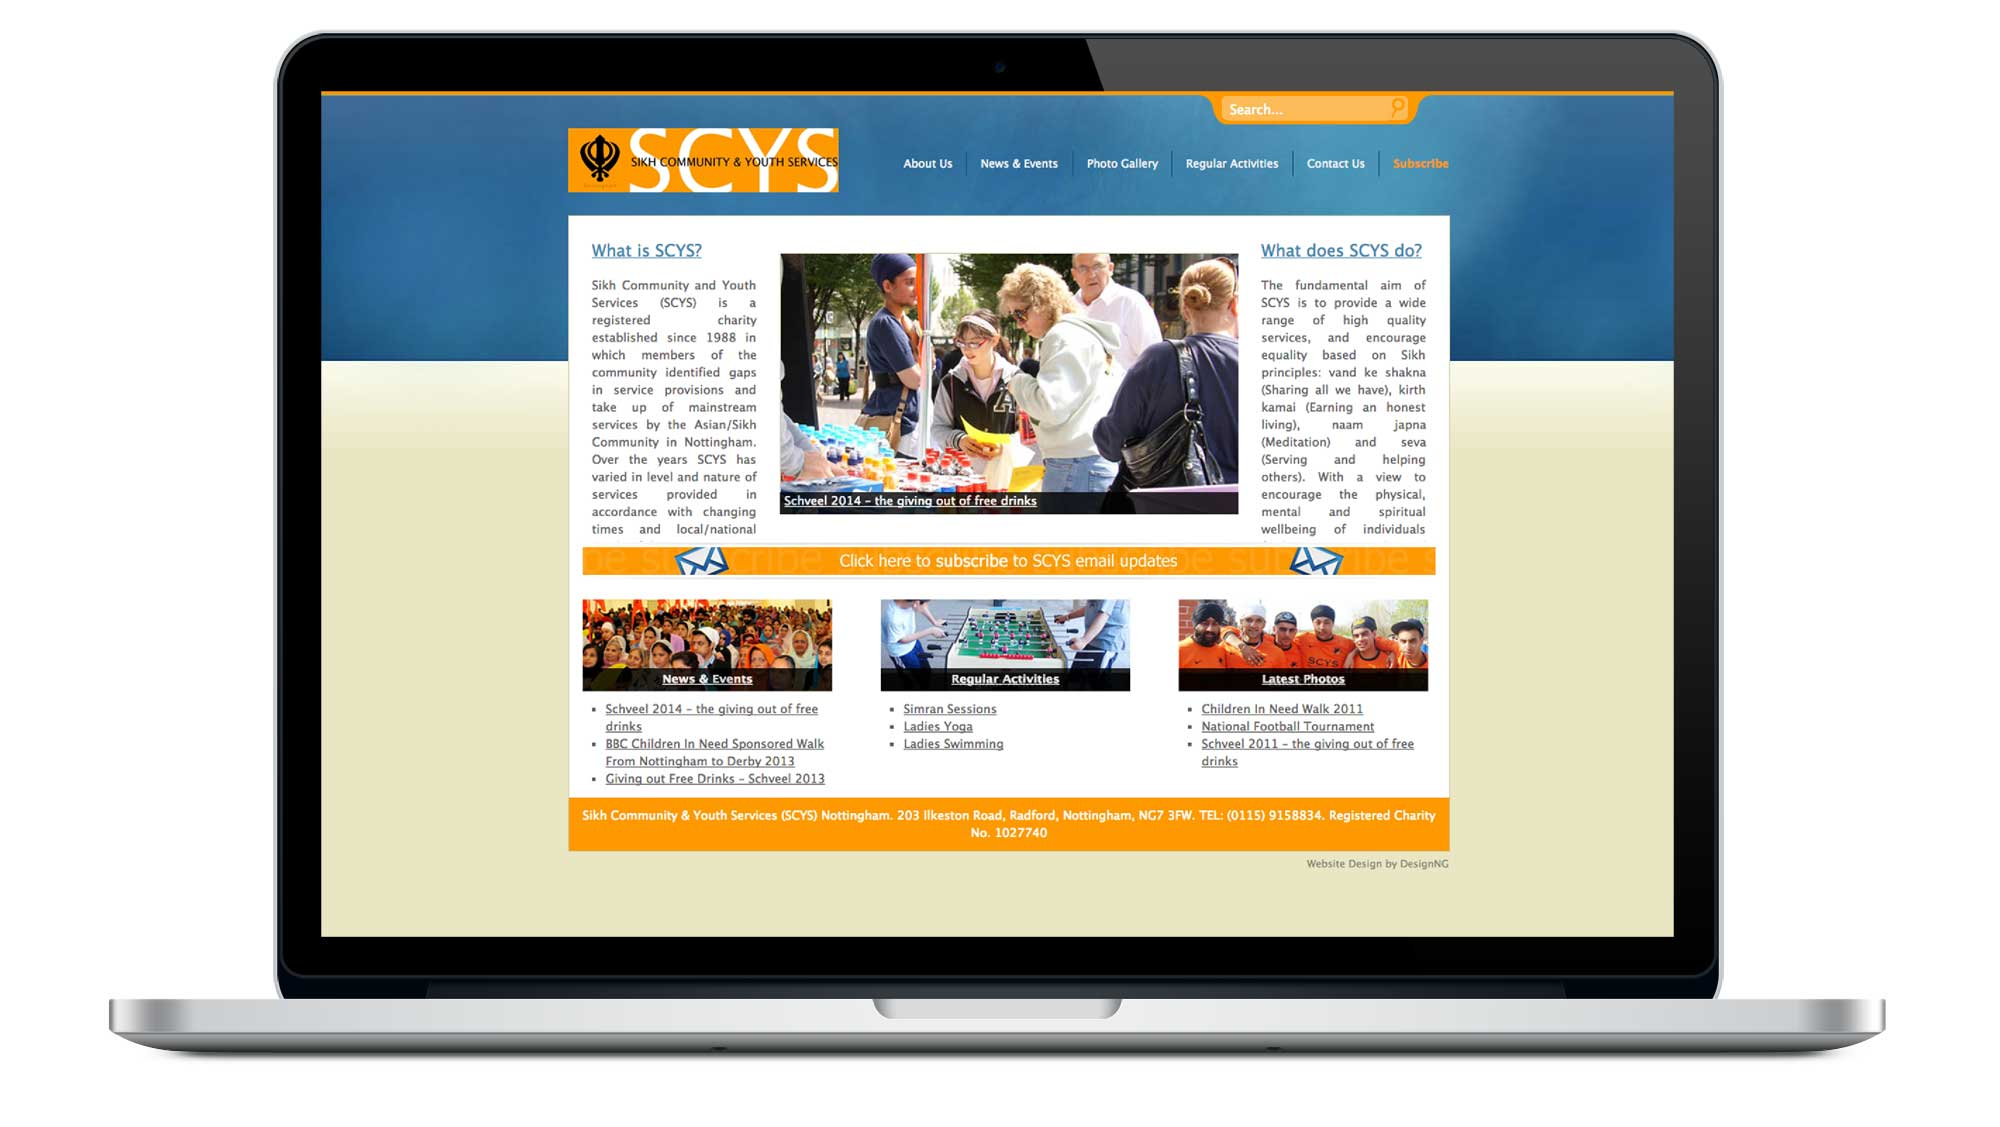 Sikh Community & Youth Services (SCYS) Website Homepage